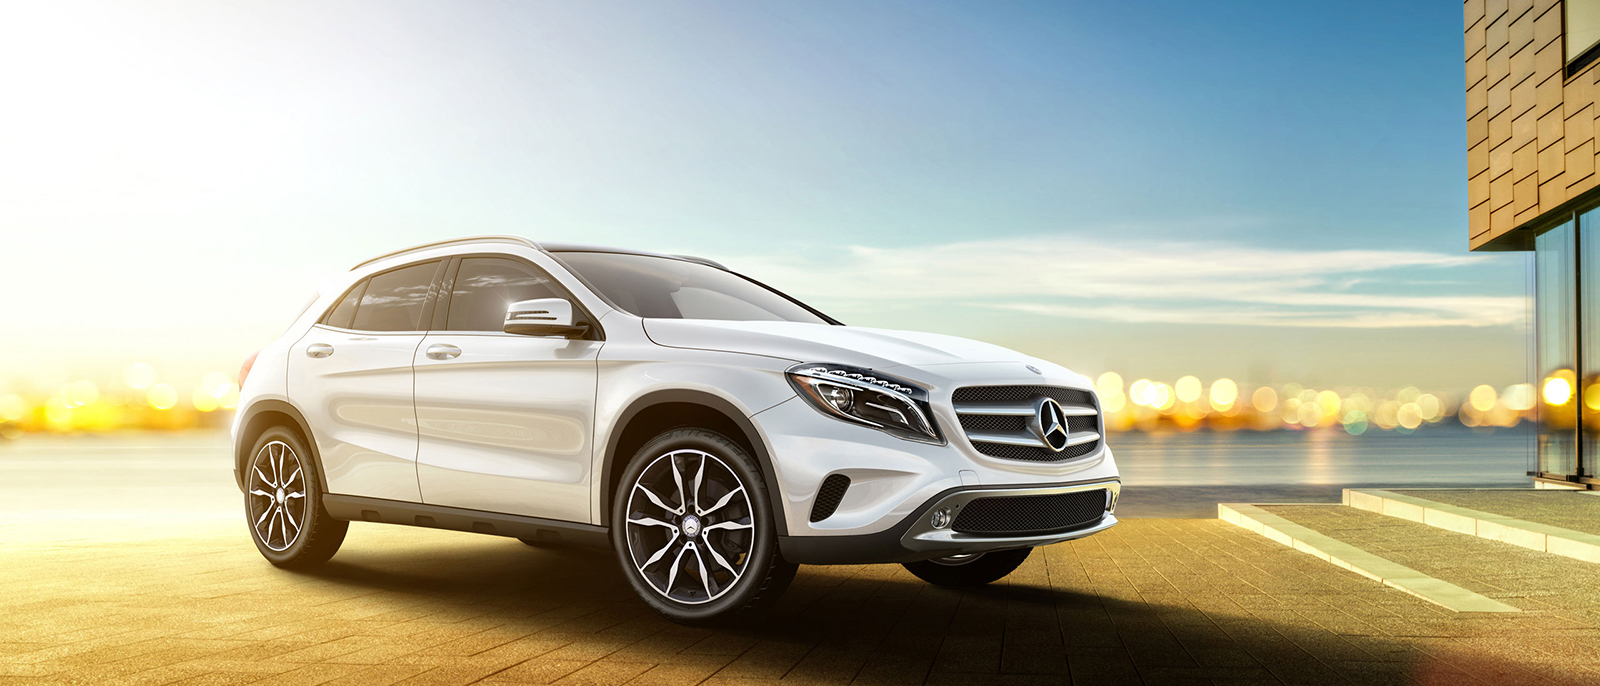 2016 mercedes benz gla250 suv silver star montr al for Mercedes benz montreal